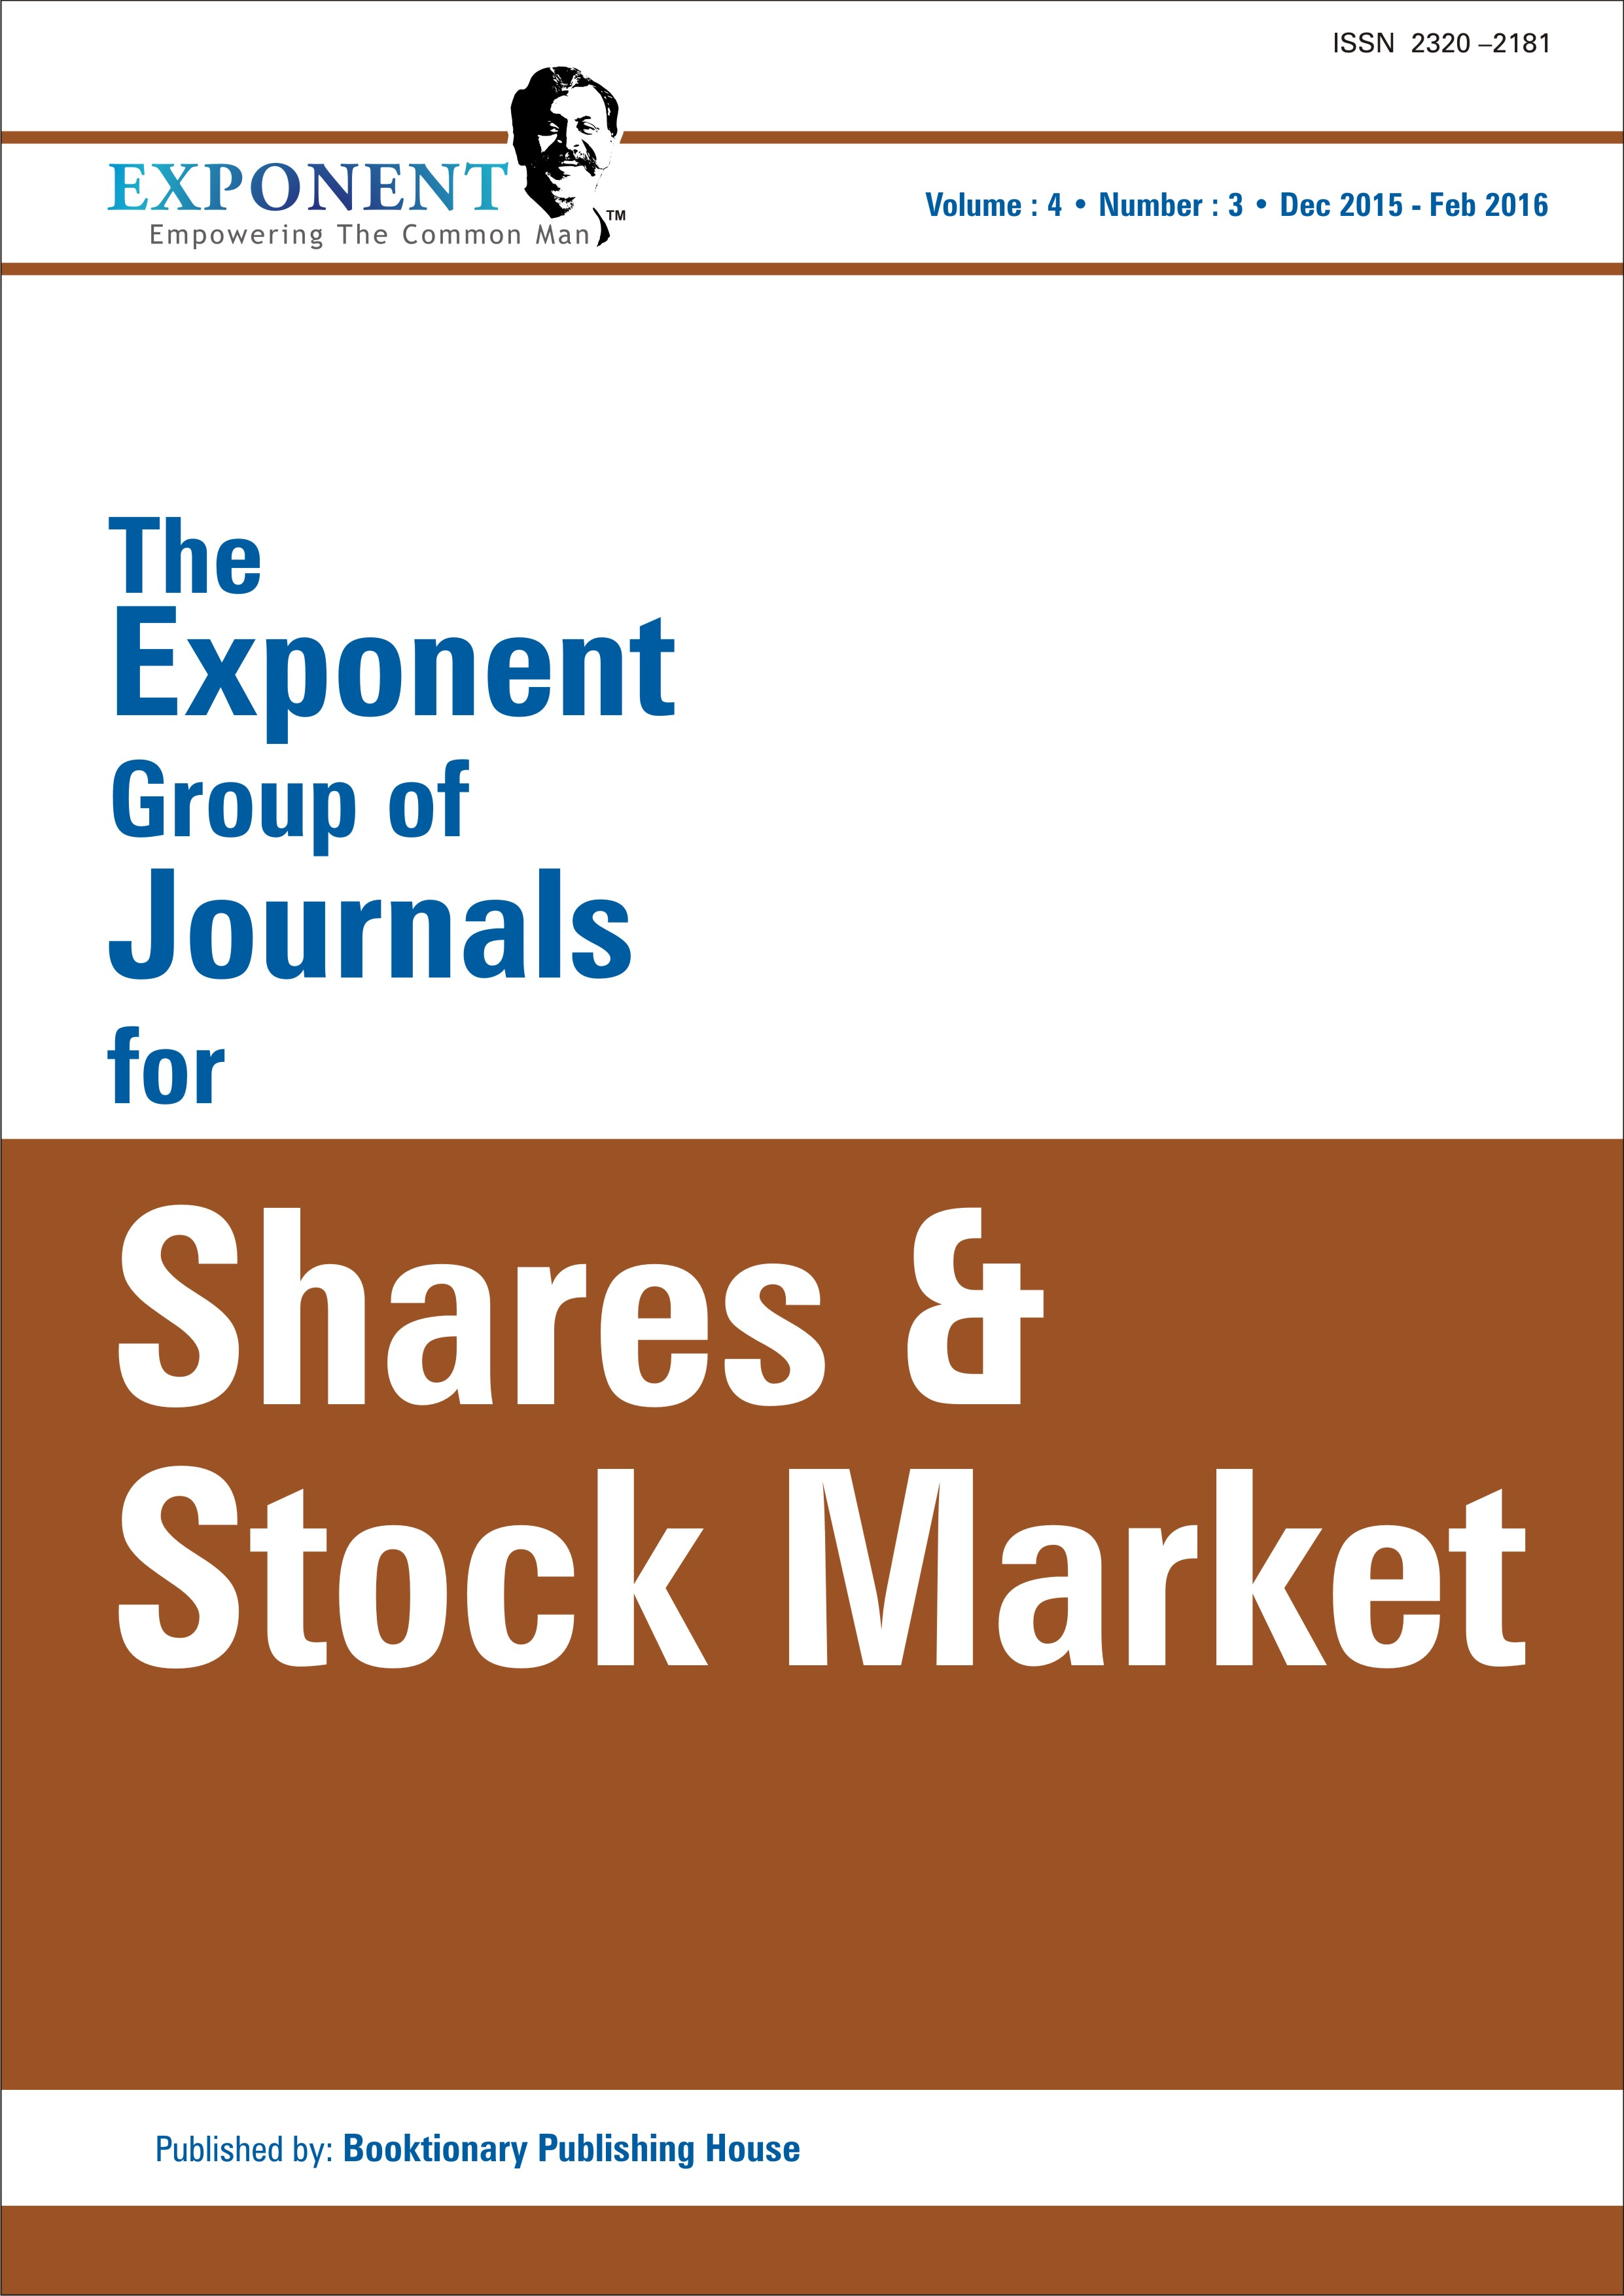 SHARES AND STOCK-VOLUME4 NO.3